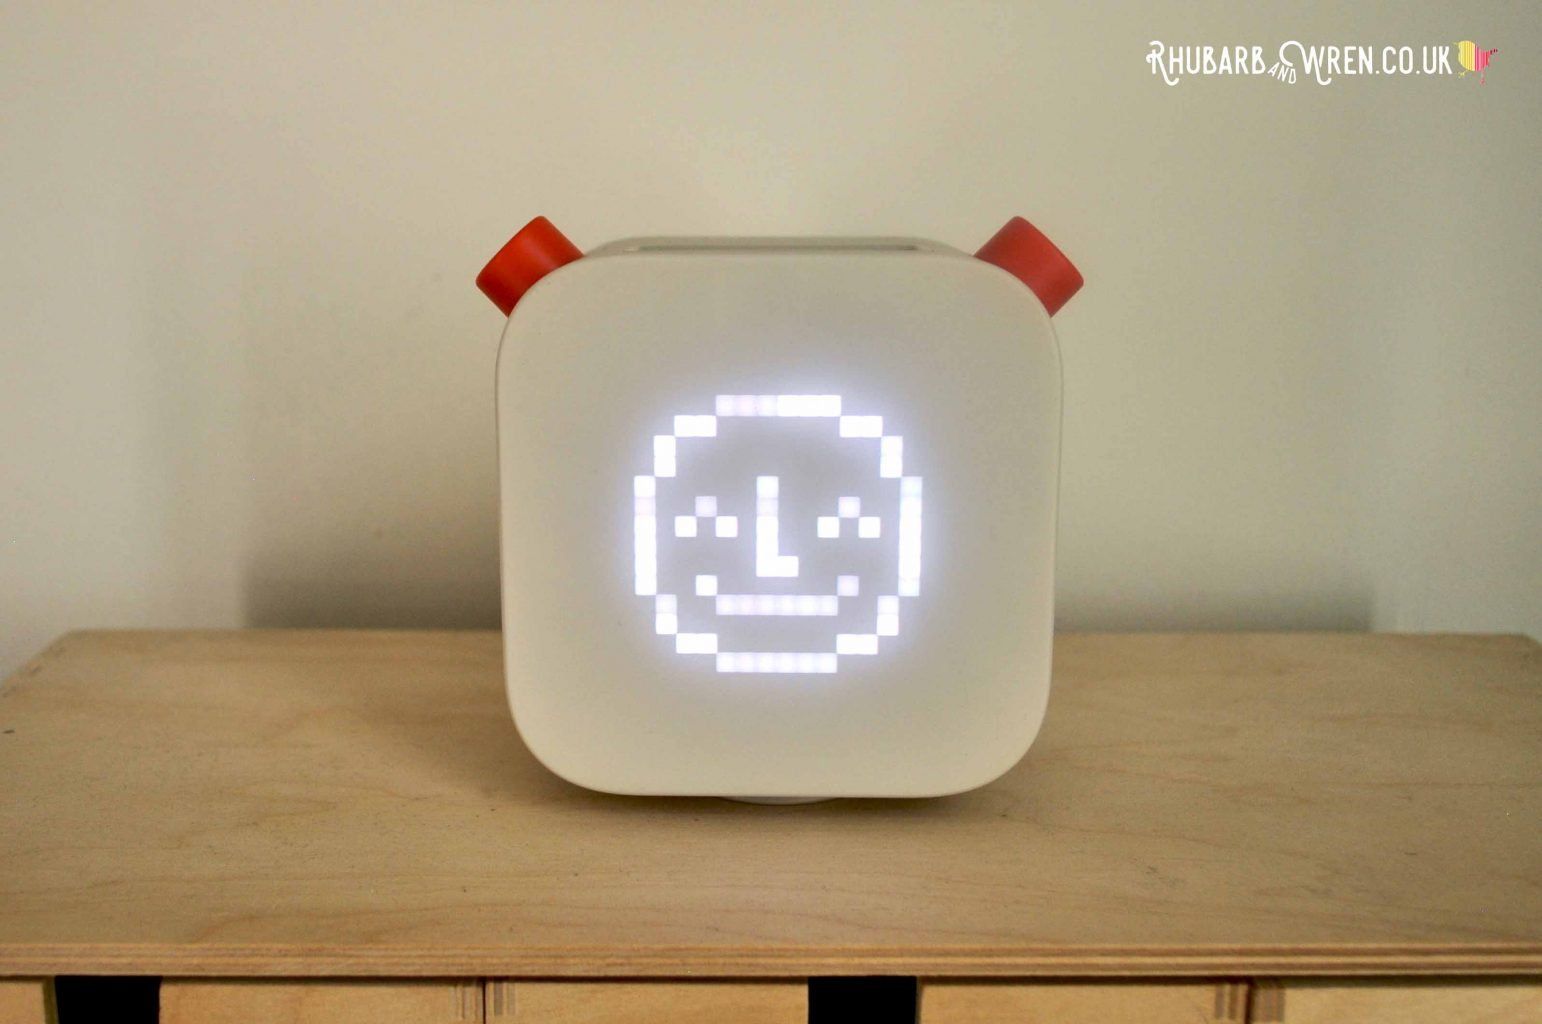 Yoto Player starts up wit  a smiling face on its pixel matrix display